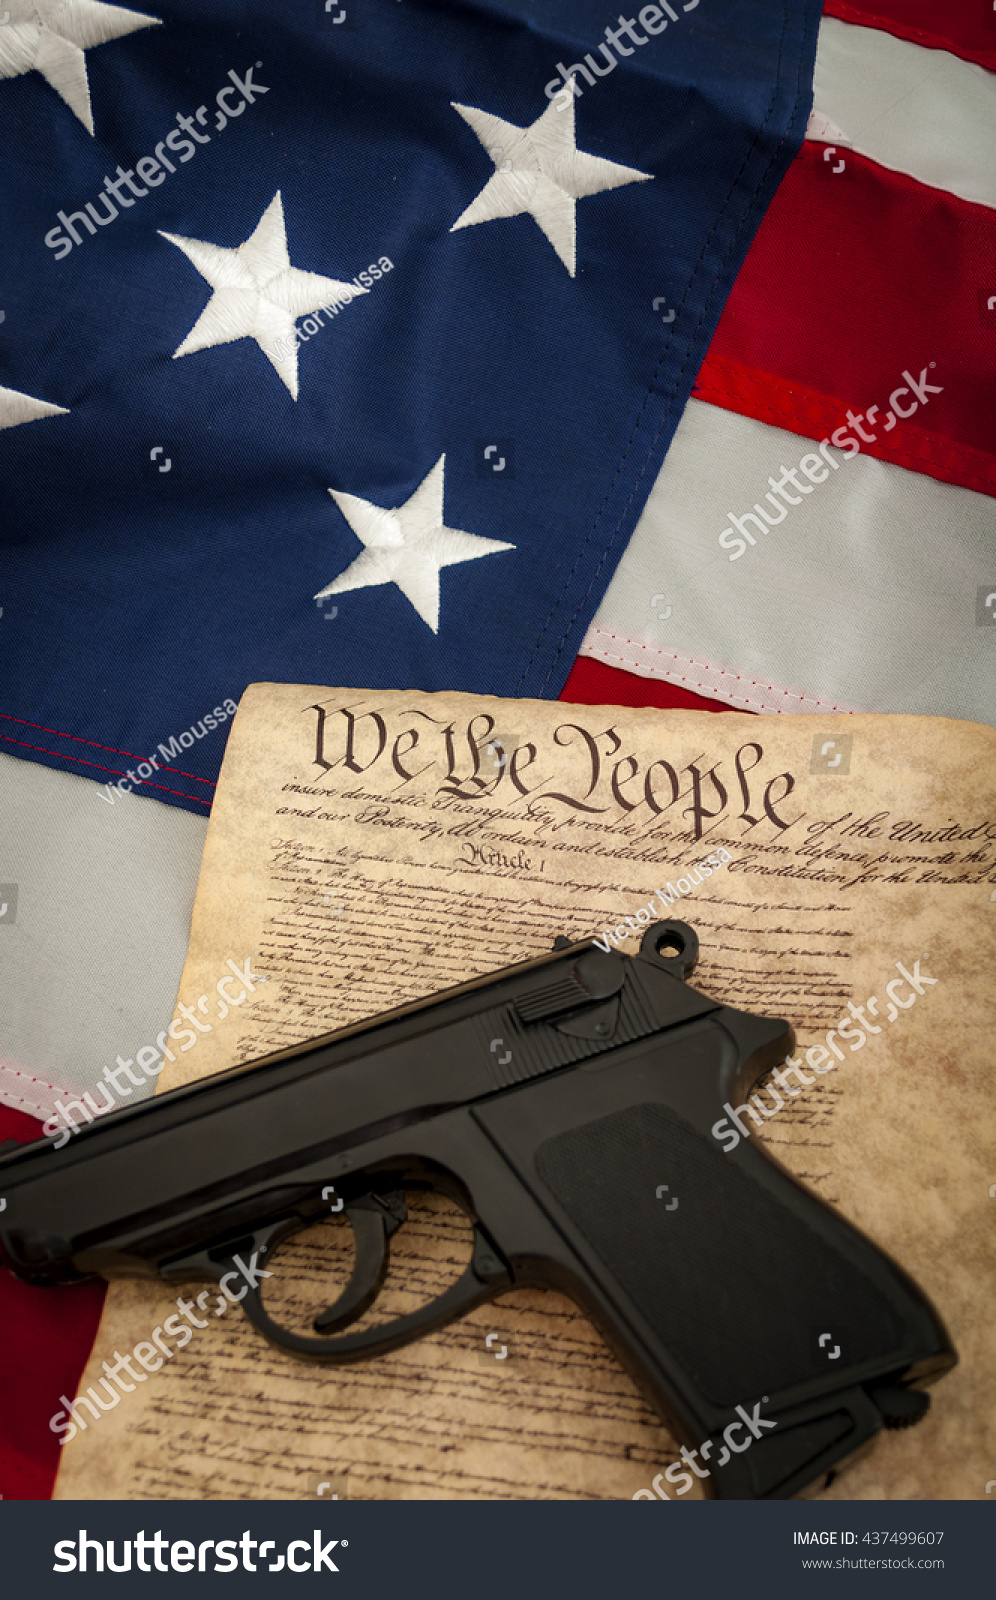 """the second amendment of the constitution the right to bear arms essay The second amendment states that, """"[a] well regulated militia being necessary to the security of a free state, the right of the people to keep and bear arms shall not be infringed"""" (us constitution, 2007, p 1193)."""